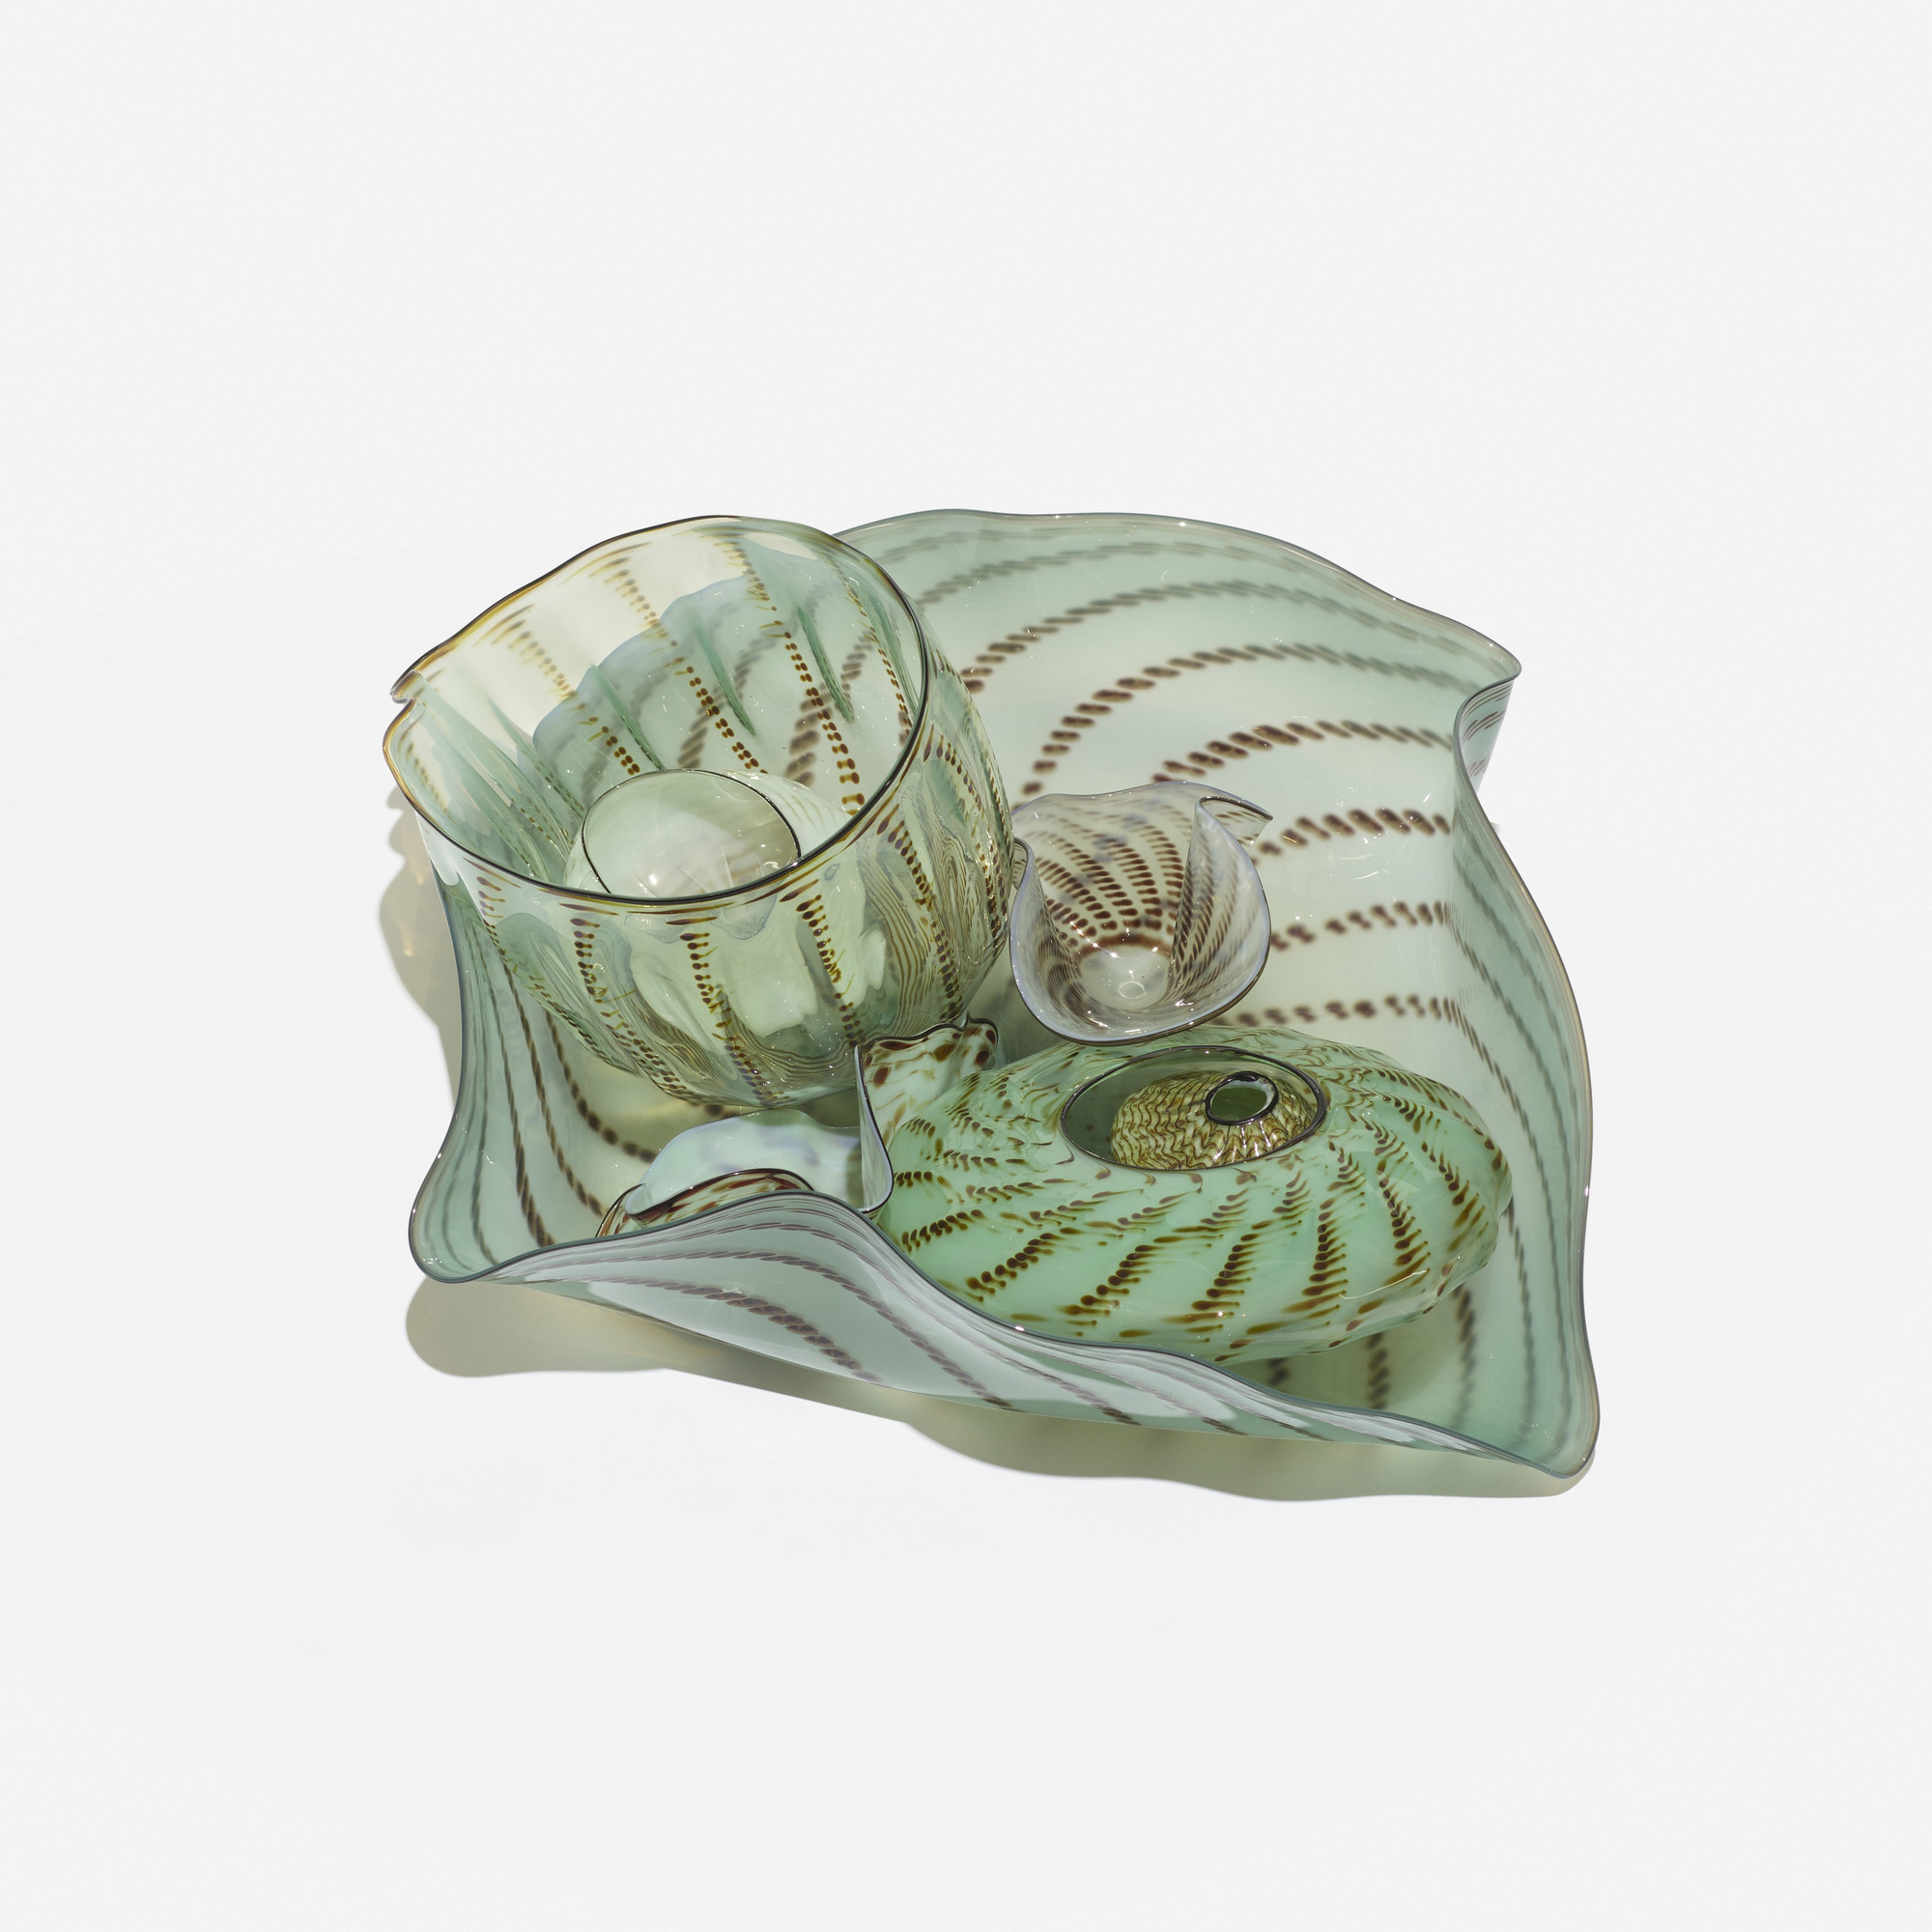 105: Dale Chihuly / Seaform Set (2 of 4)